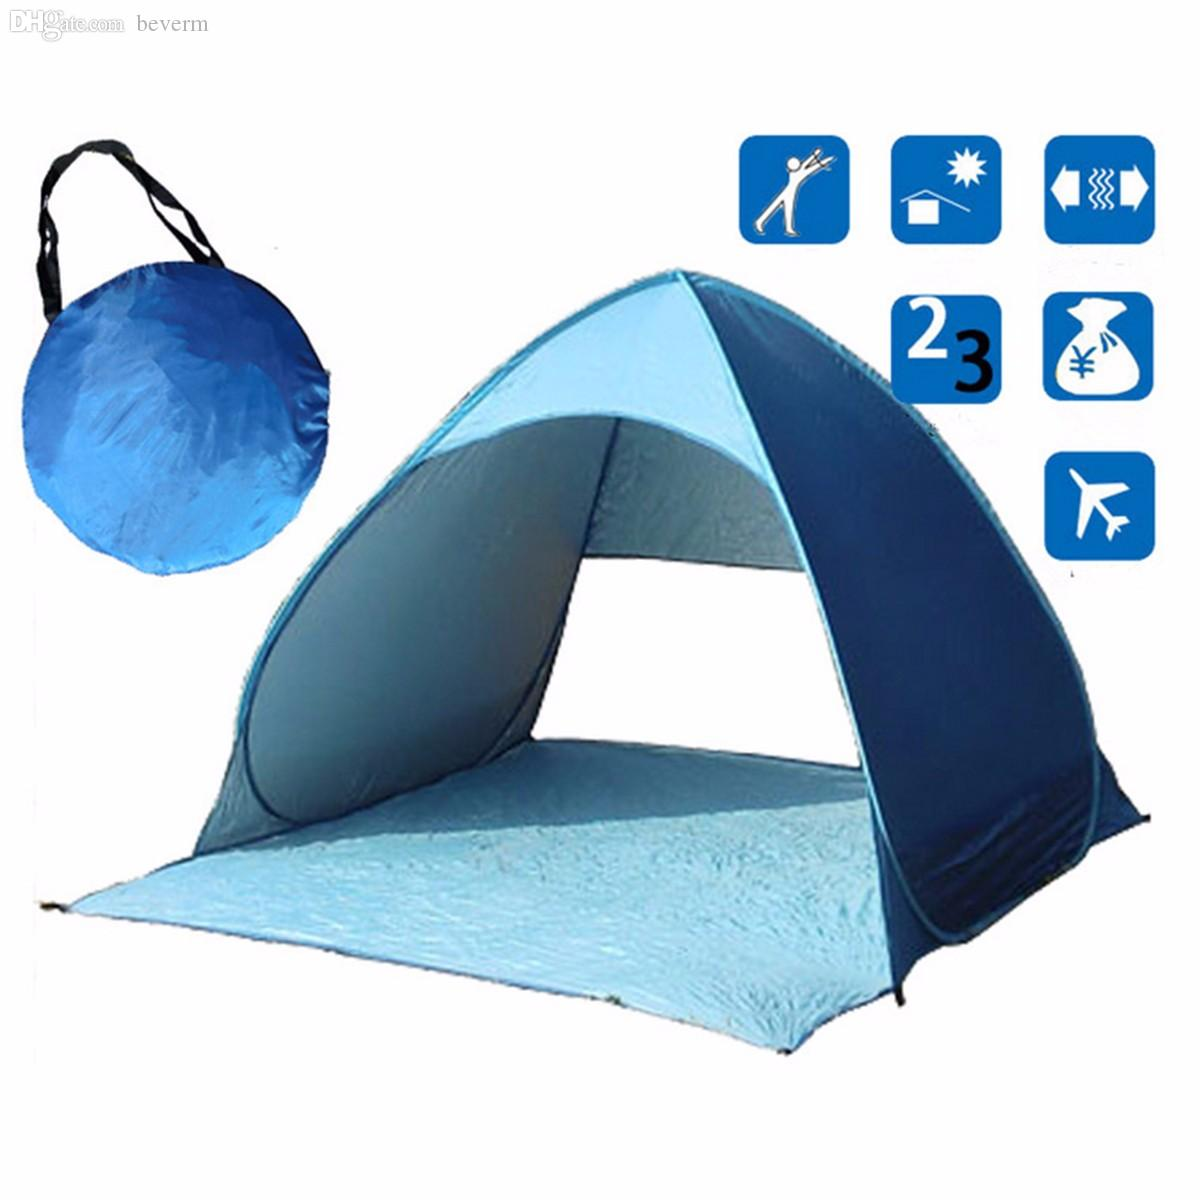 Wholesale Full Automatic Tent Beach Tent Festival Shelter Childrens Upf 40 Sun Screen Wind Break Quick Open Tent Outwell Tents Large Tents For Sale From ...  sc 1 st  DHgate.com & Wholesale Full Automatic Tent Beach Tent Festival Shelter ...